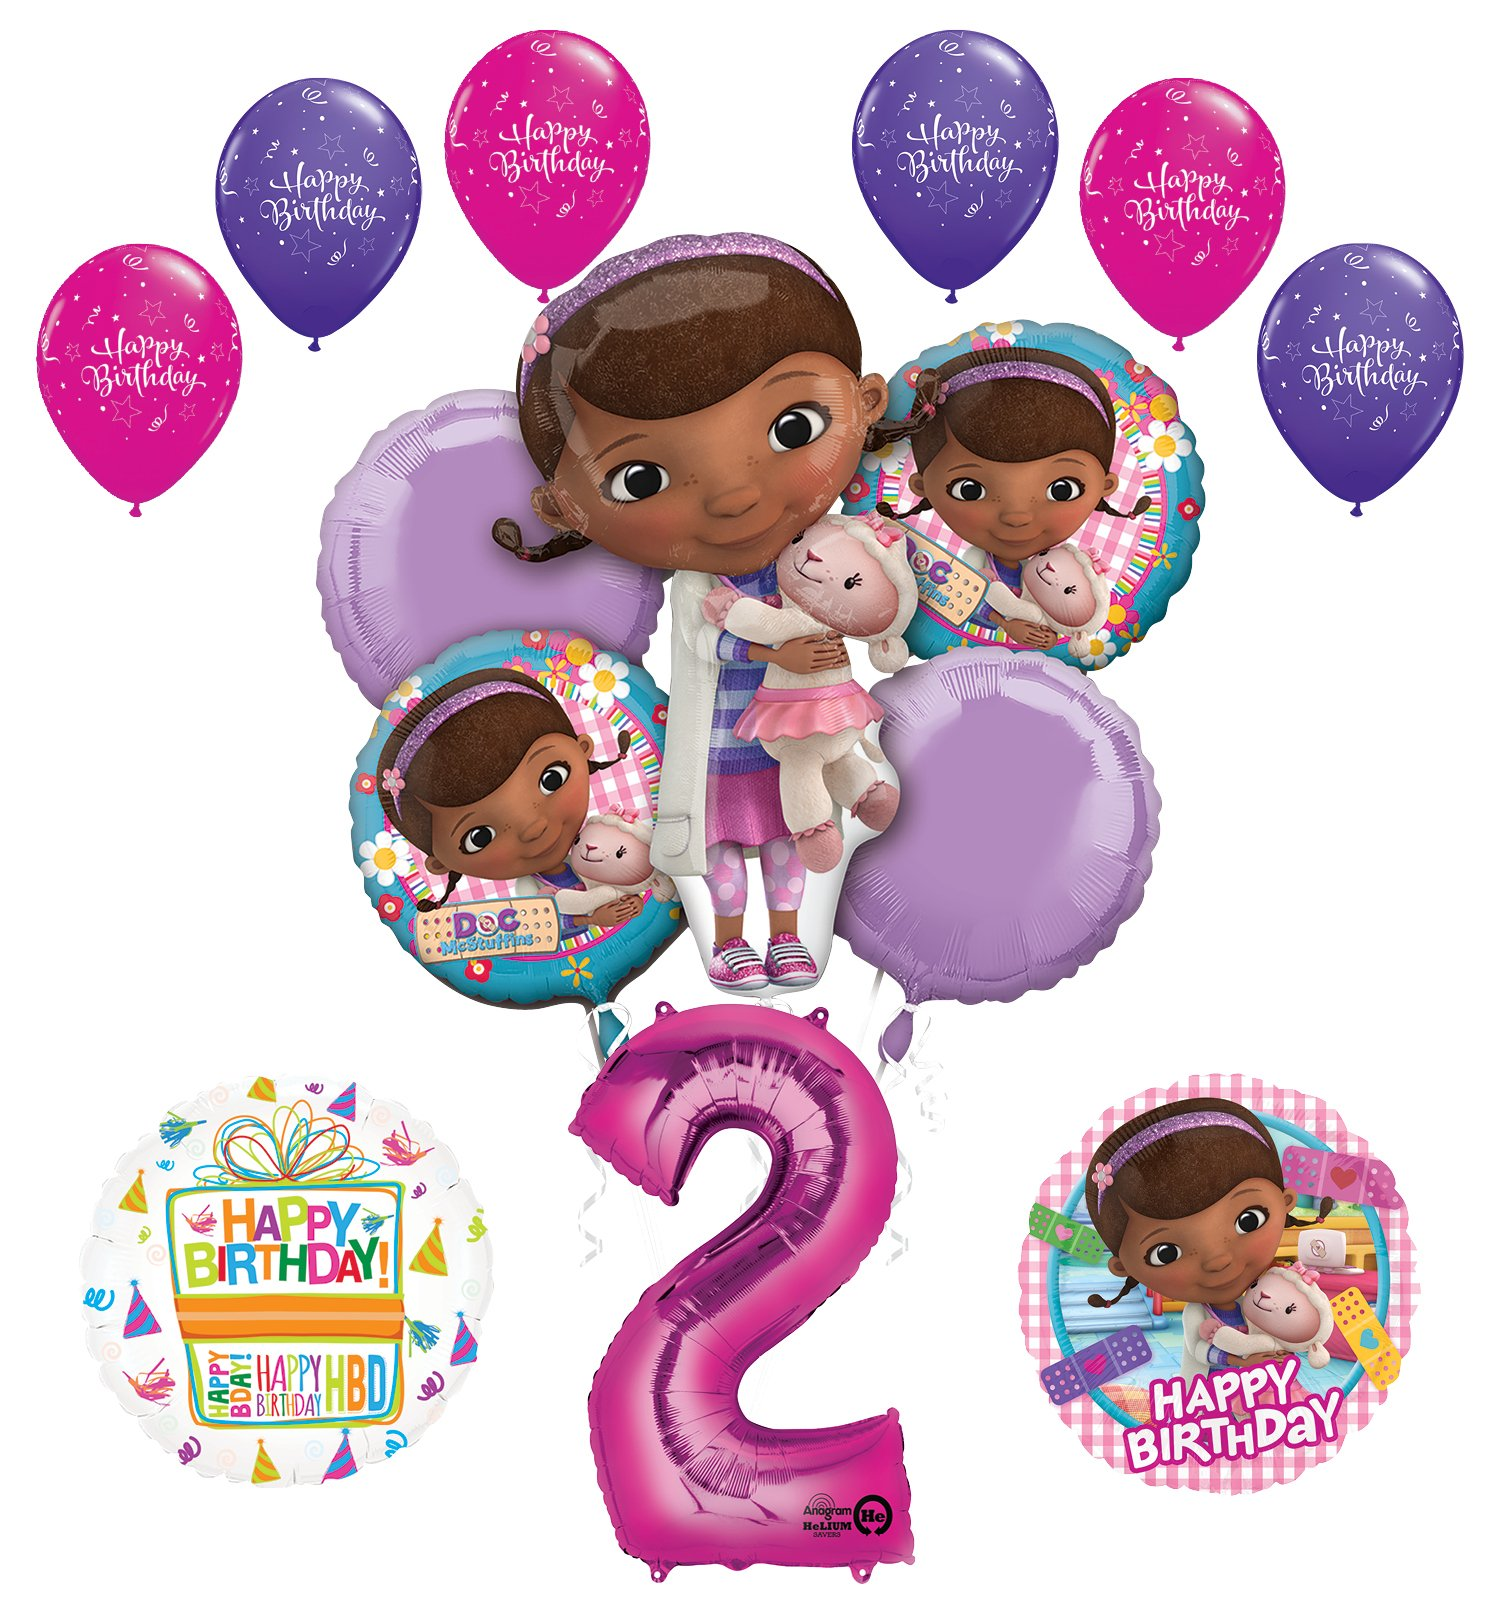 Doc McStuffins 2nd Birthday Party Supplies And Balloon